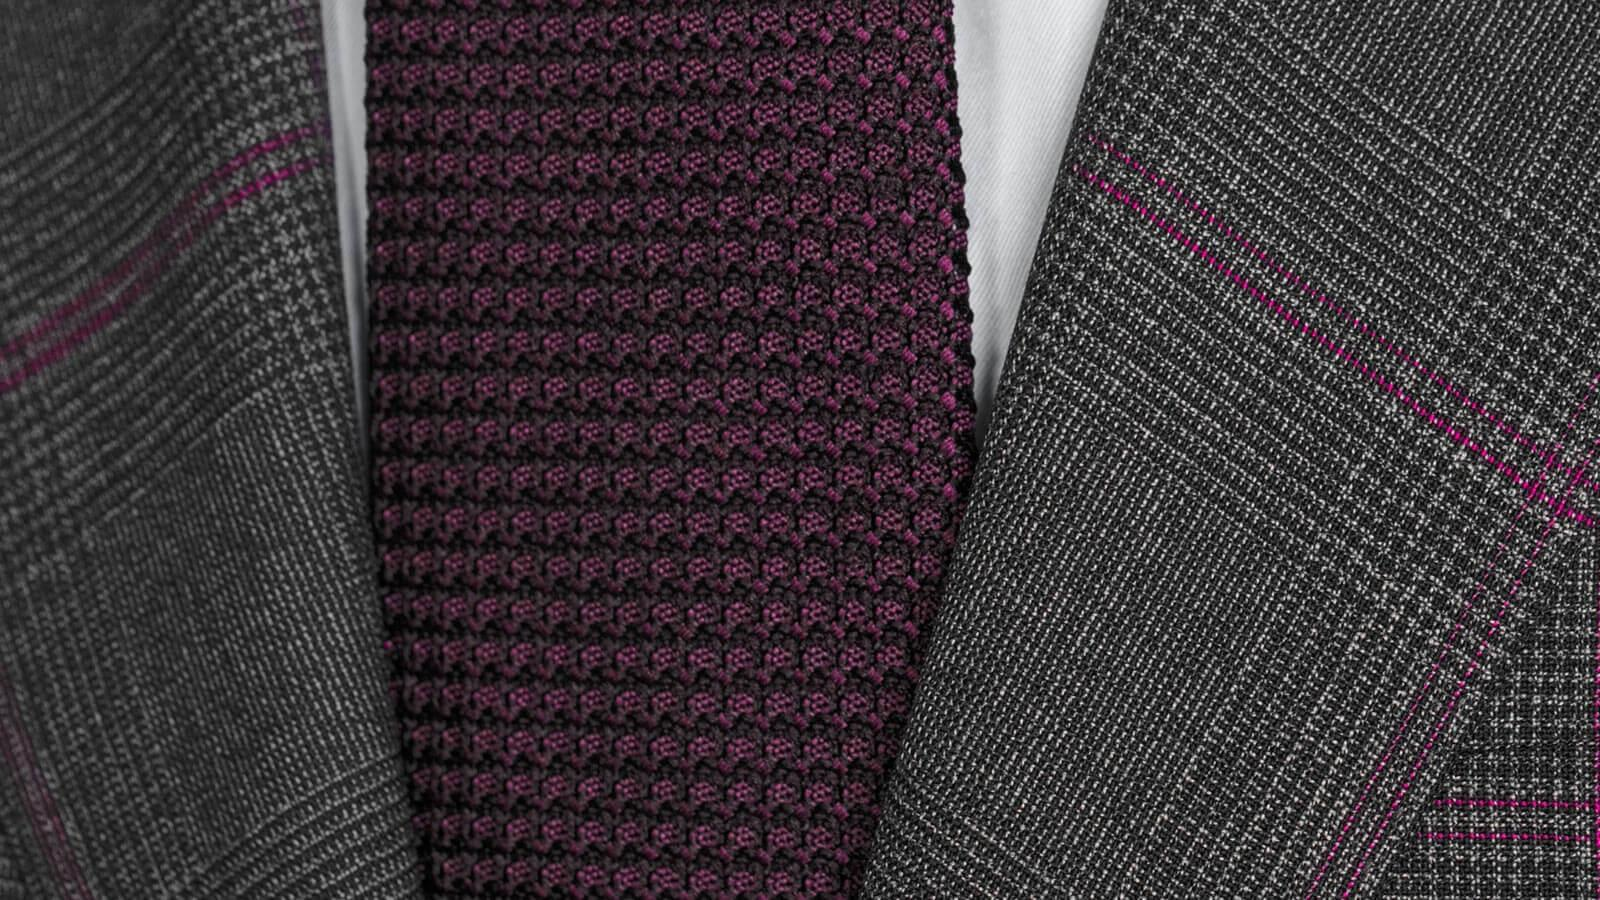 Tropical Rustic Charcoal Plaid with Purple Overcheck Suit - slider image 1